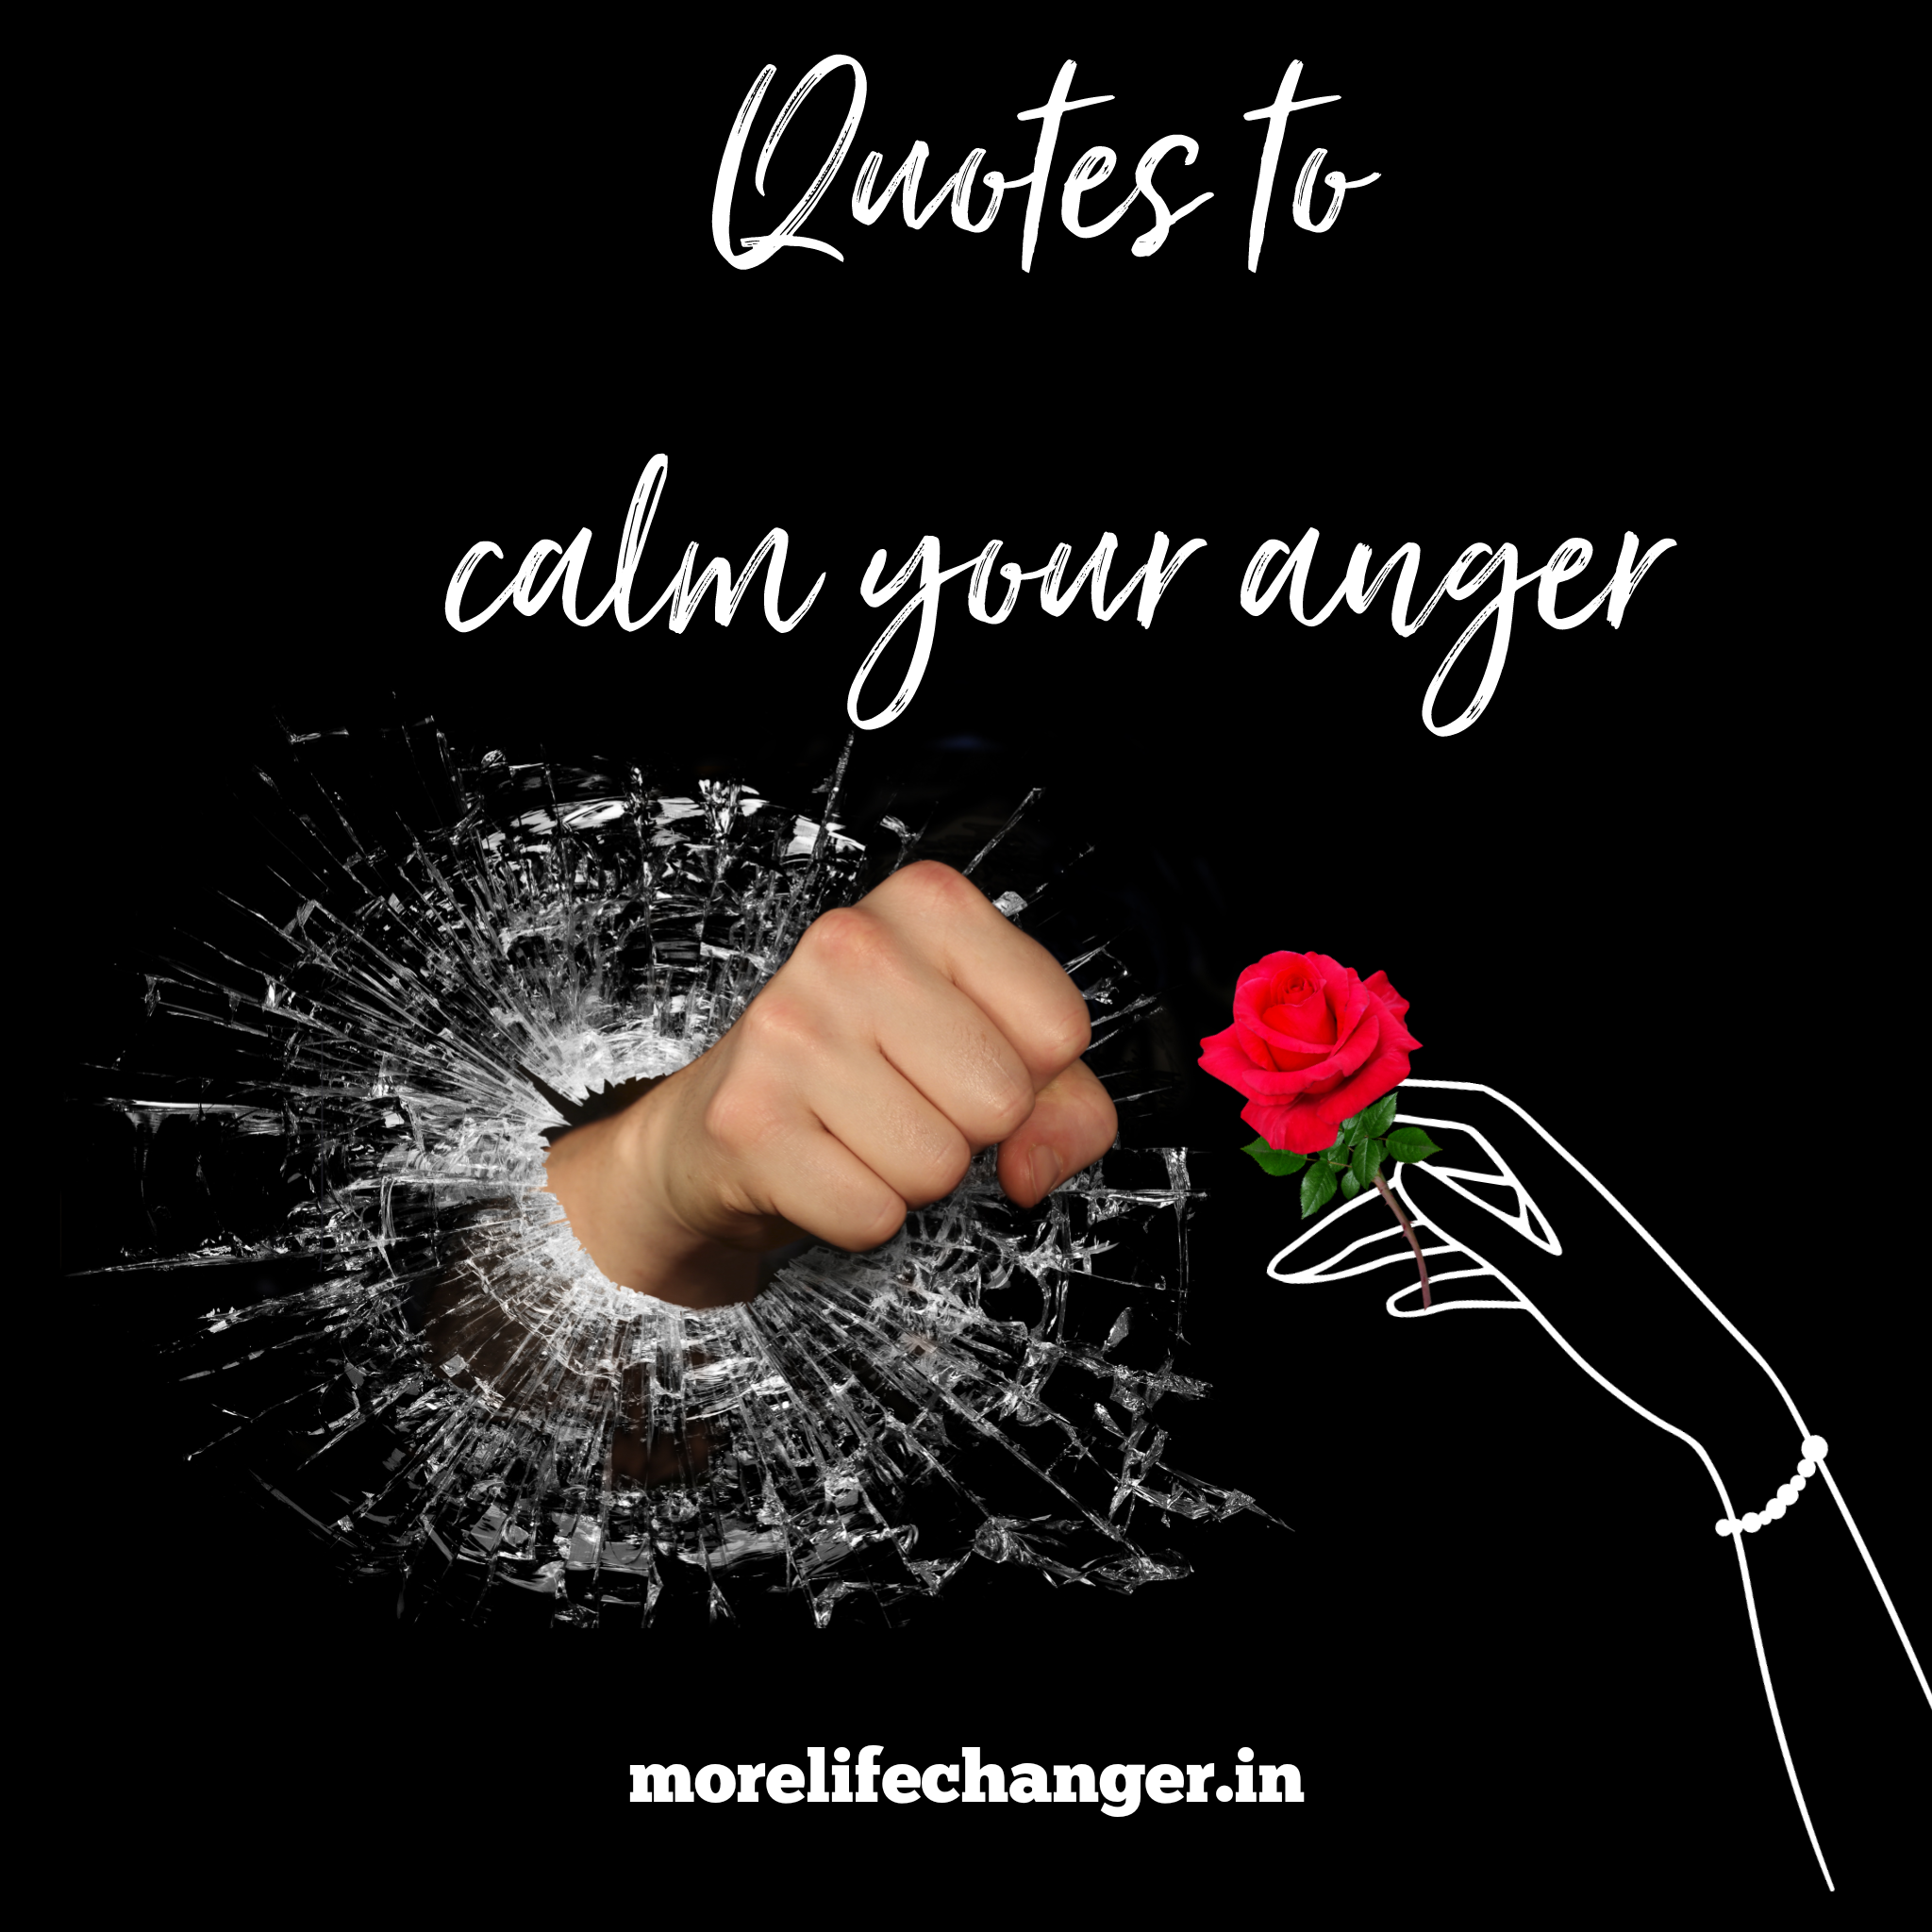 Quotes to calm anger